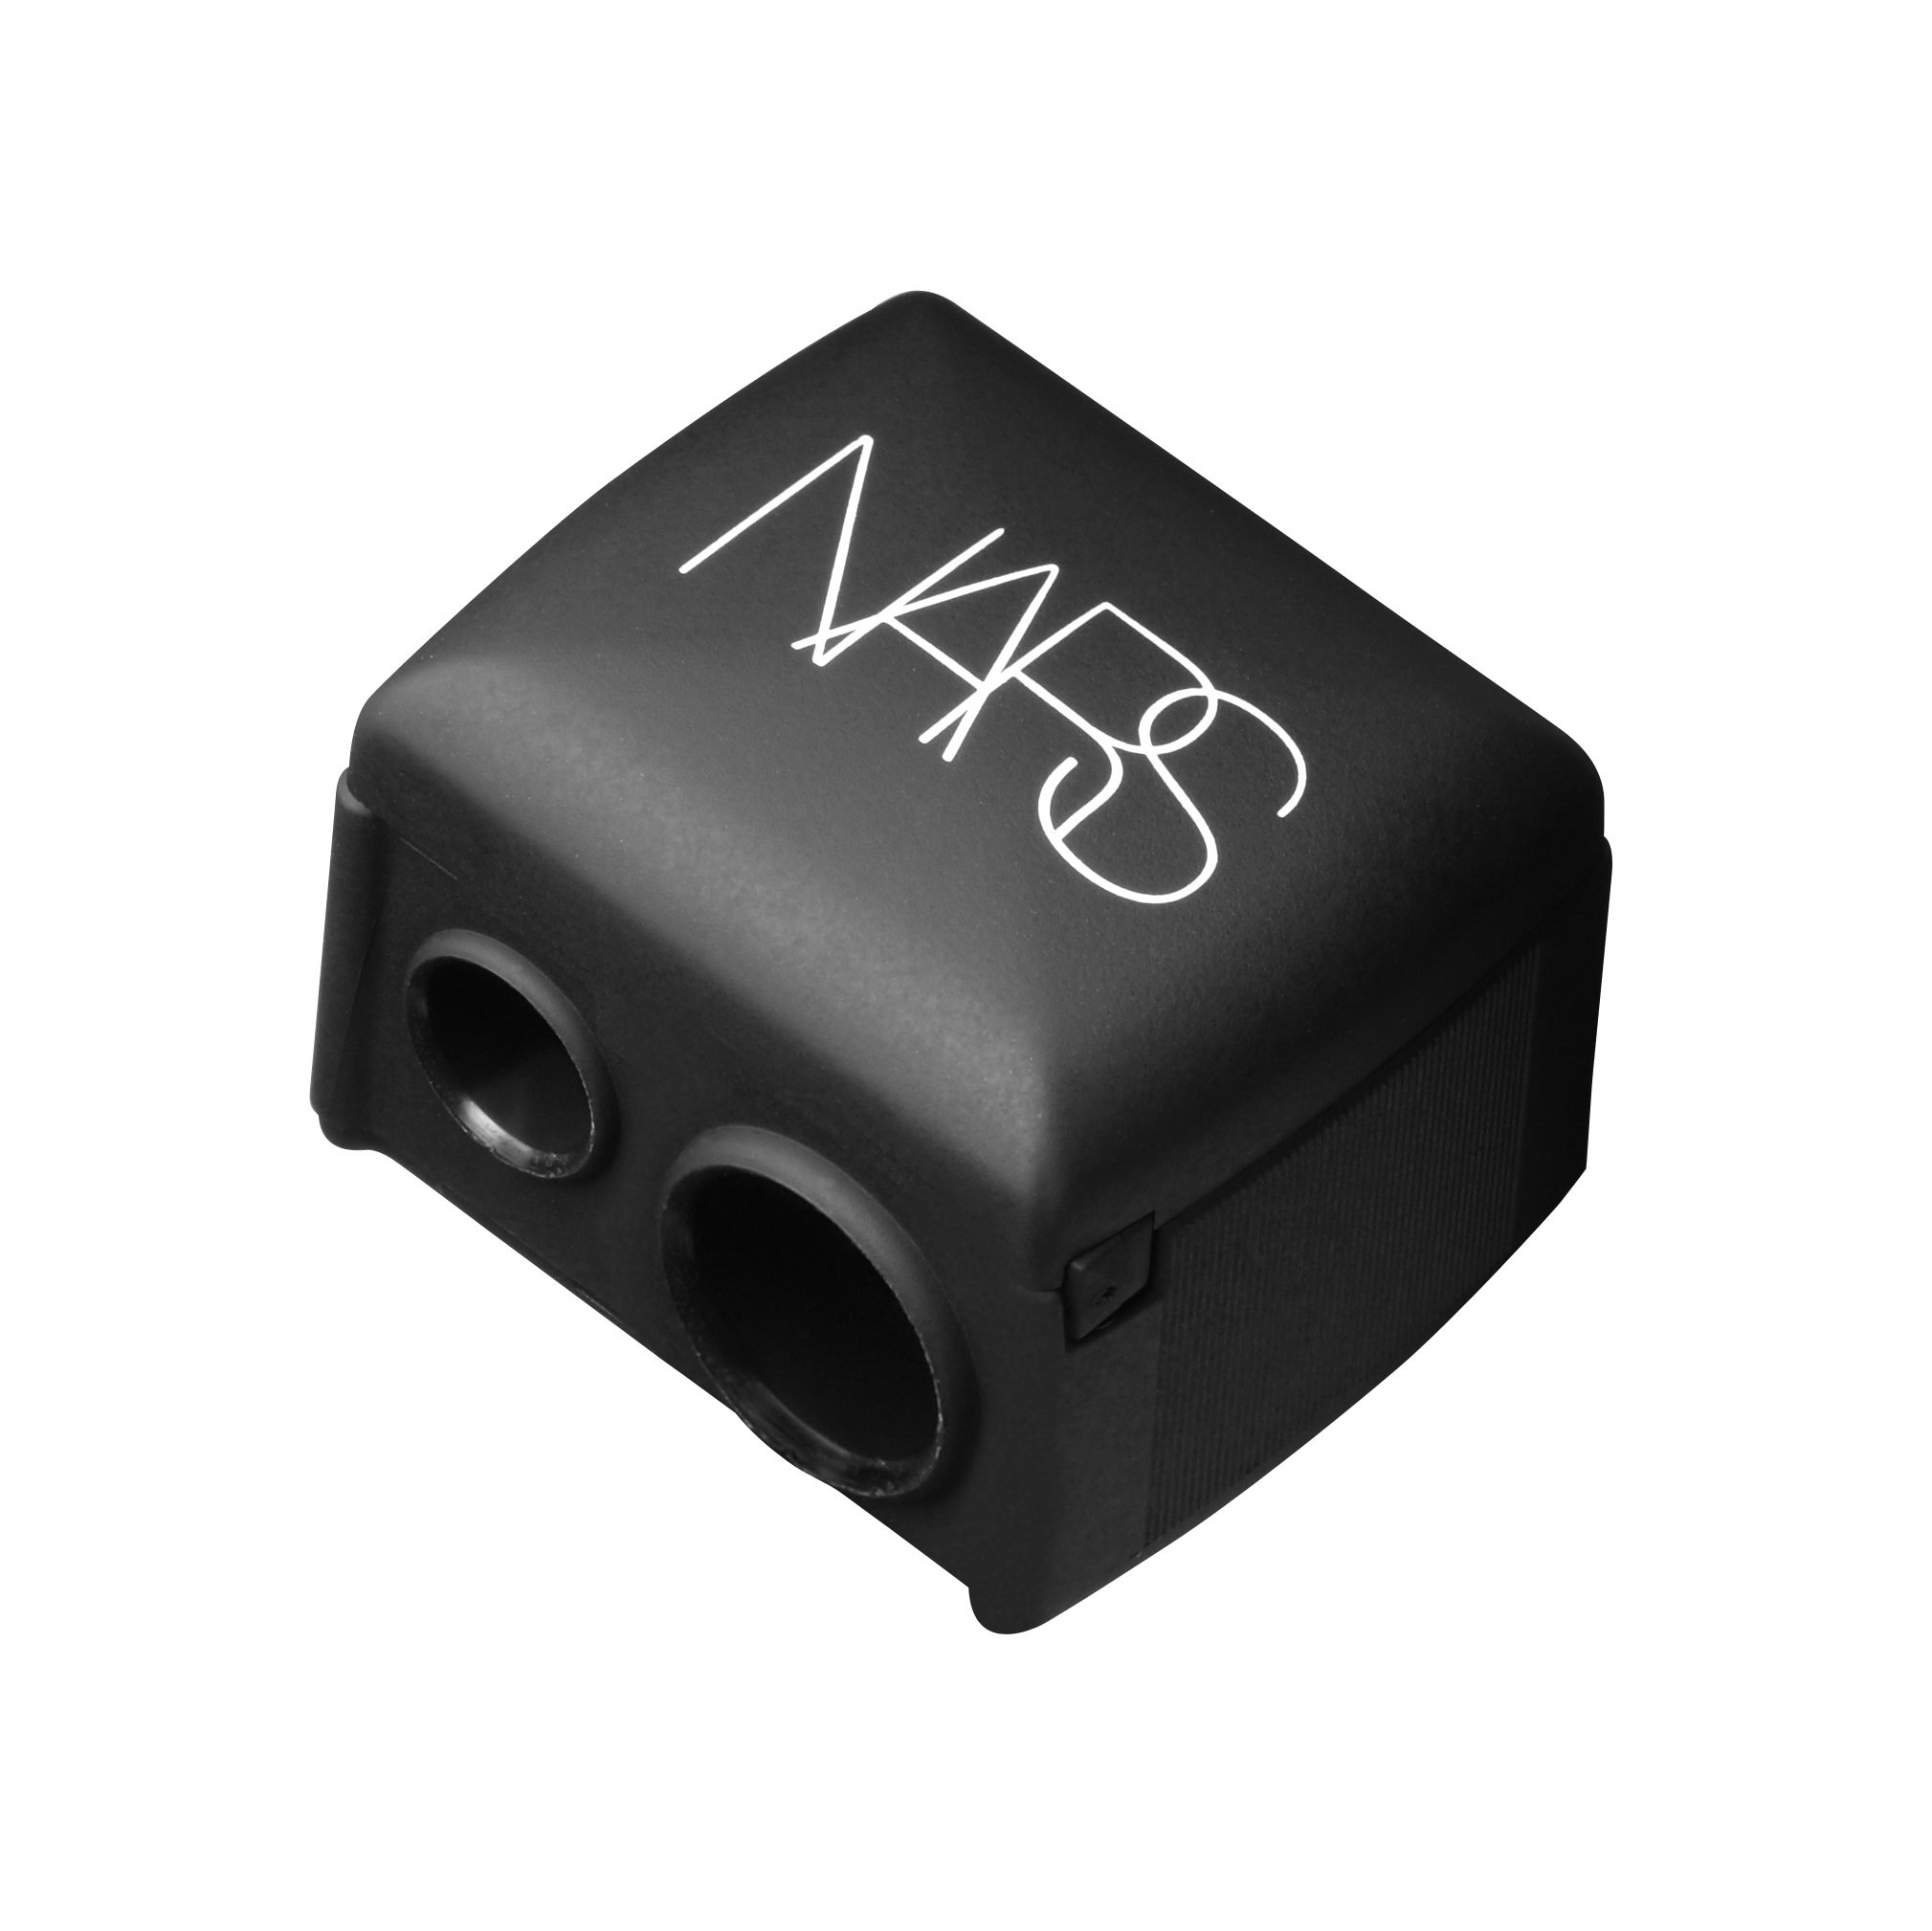 Best Rated In Cosmetic Pencil Sharpeners Helpful Customer Reviews